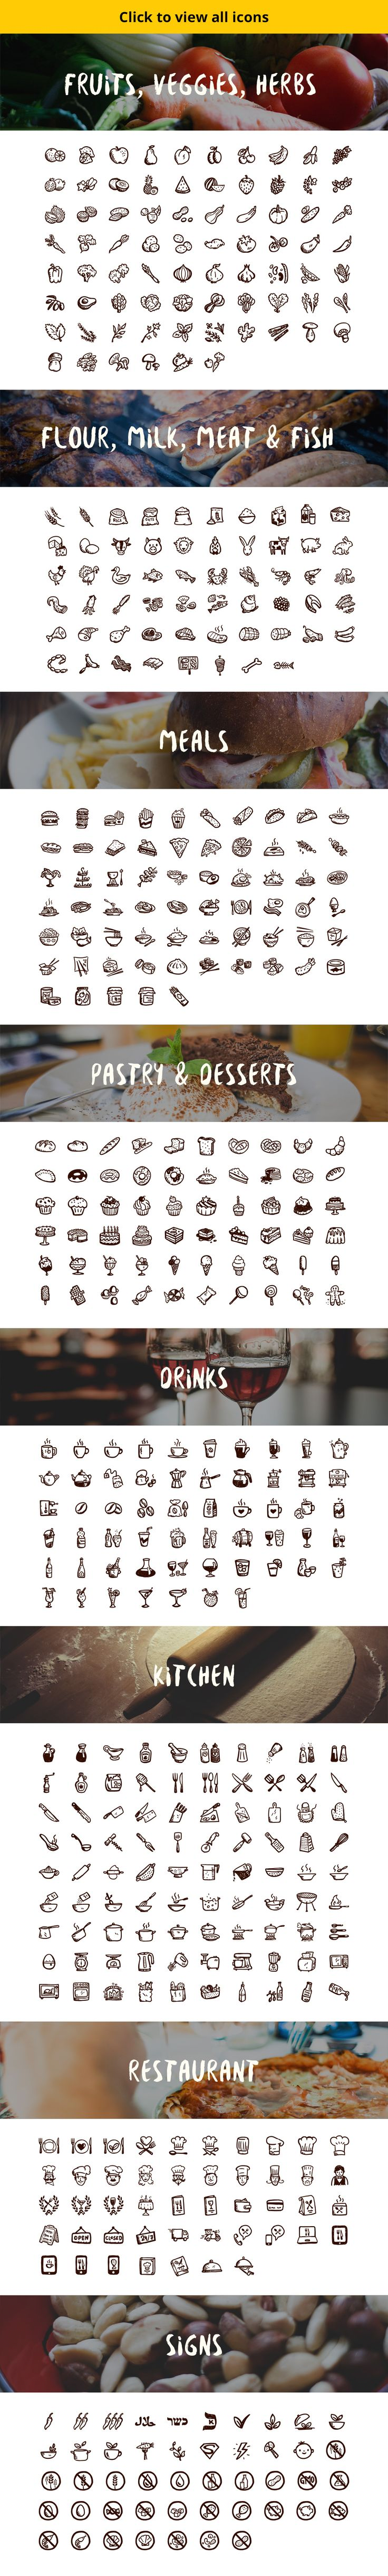 500 hand-drawn food icons by Hand-drawn Goods on Creative Market